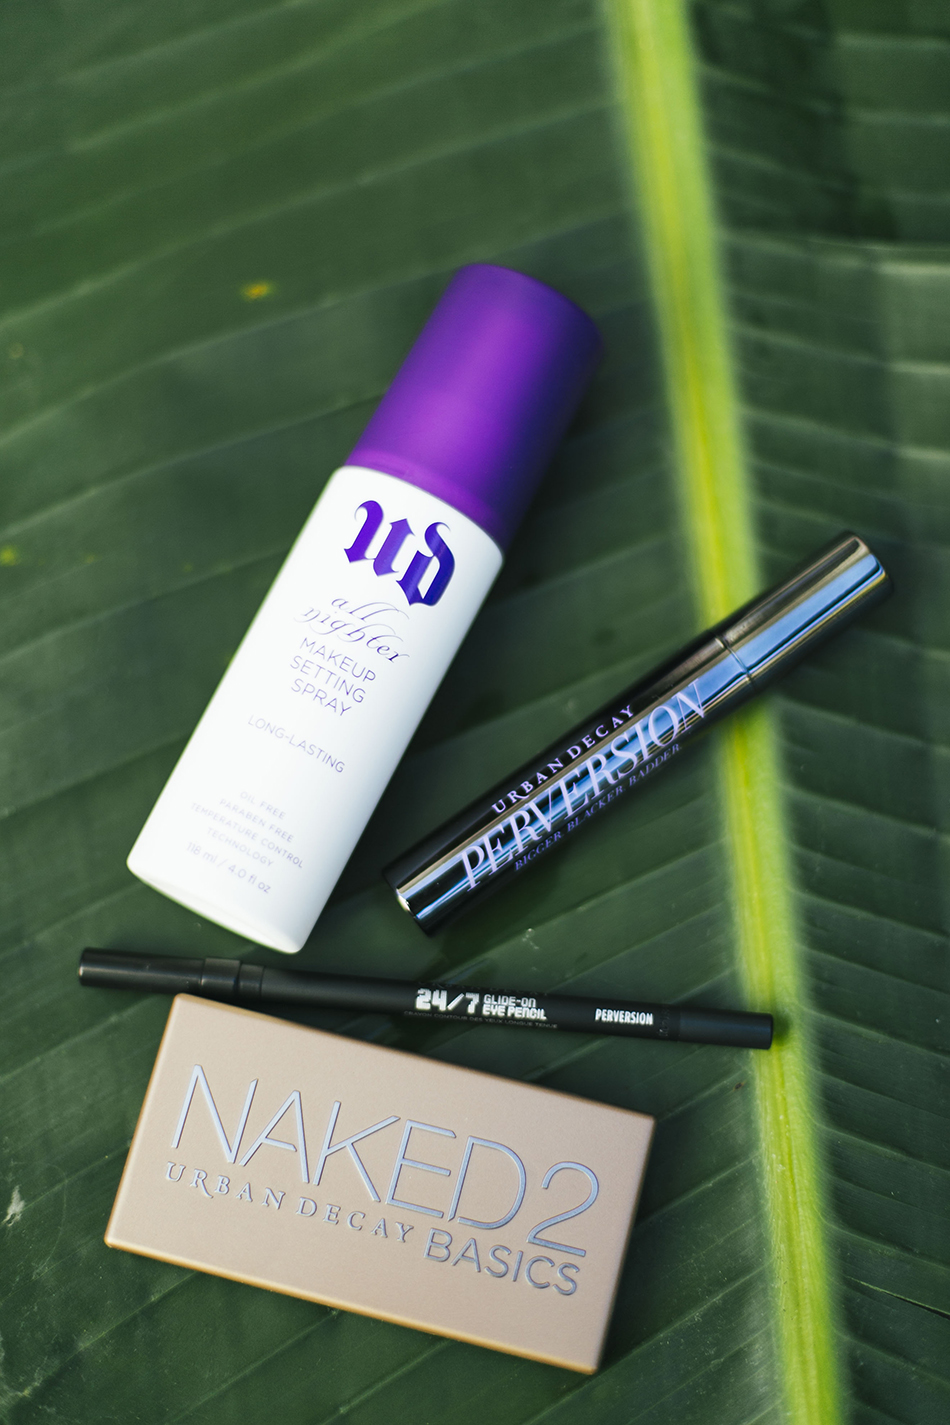 Best Sivanna Makeup Products In India: Top 10 With Prices